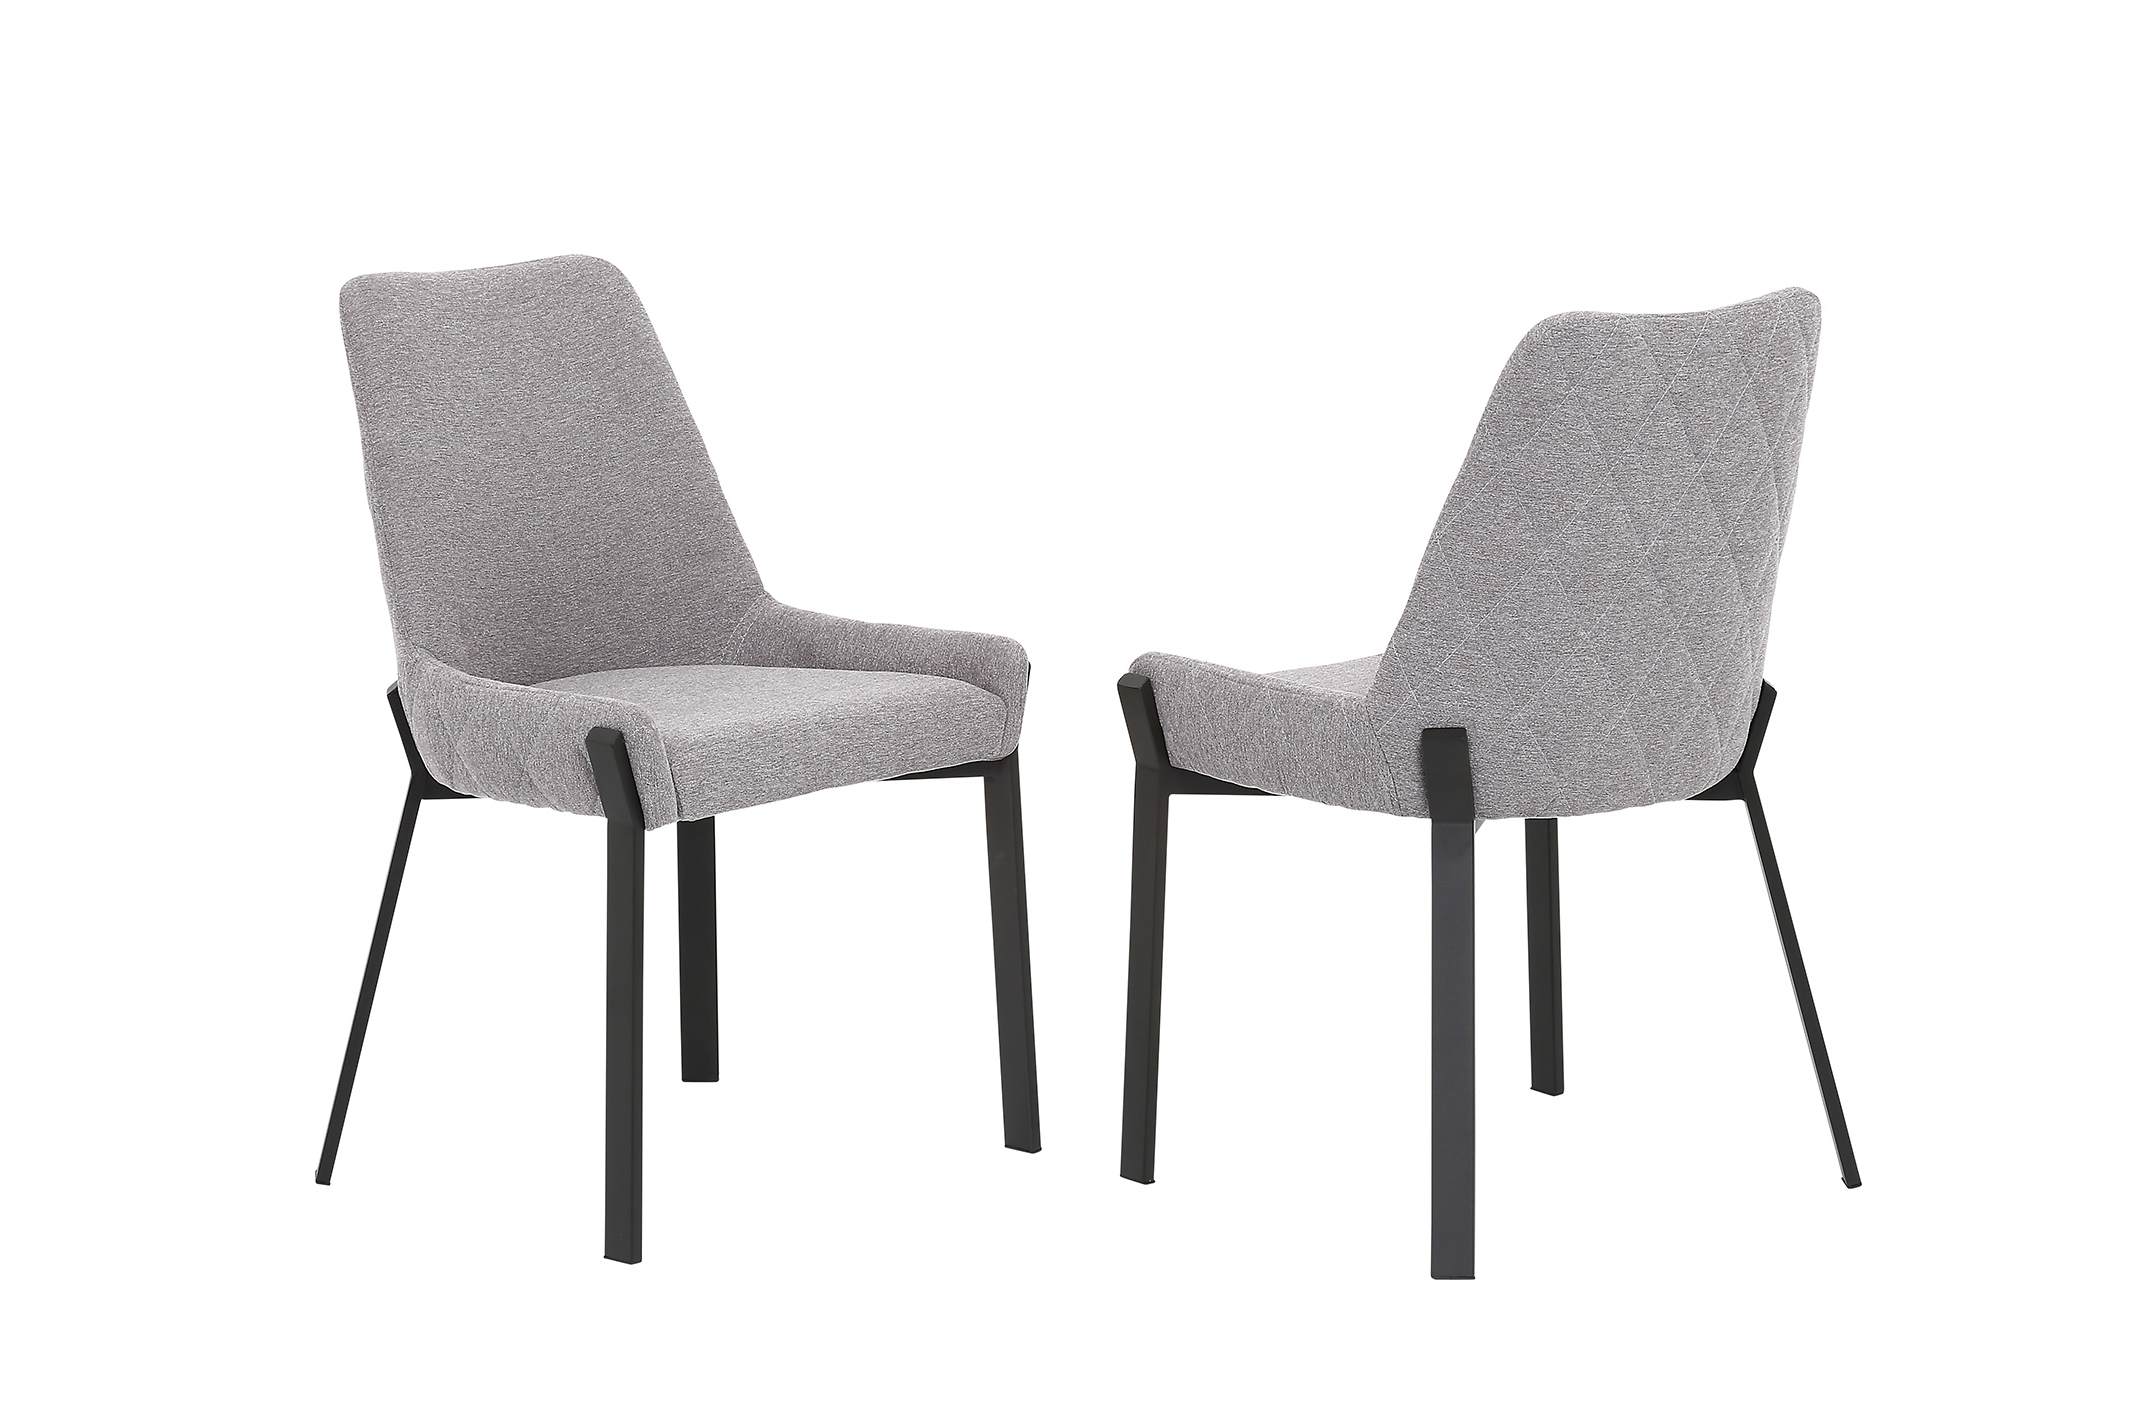 Most Recently Released Carlton Wood Leg Upholstered Dining Chairs Regarding Calabria Dining Chair (View 19 of 20)